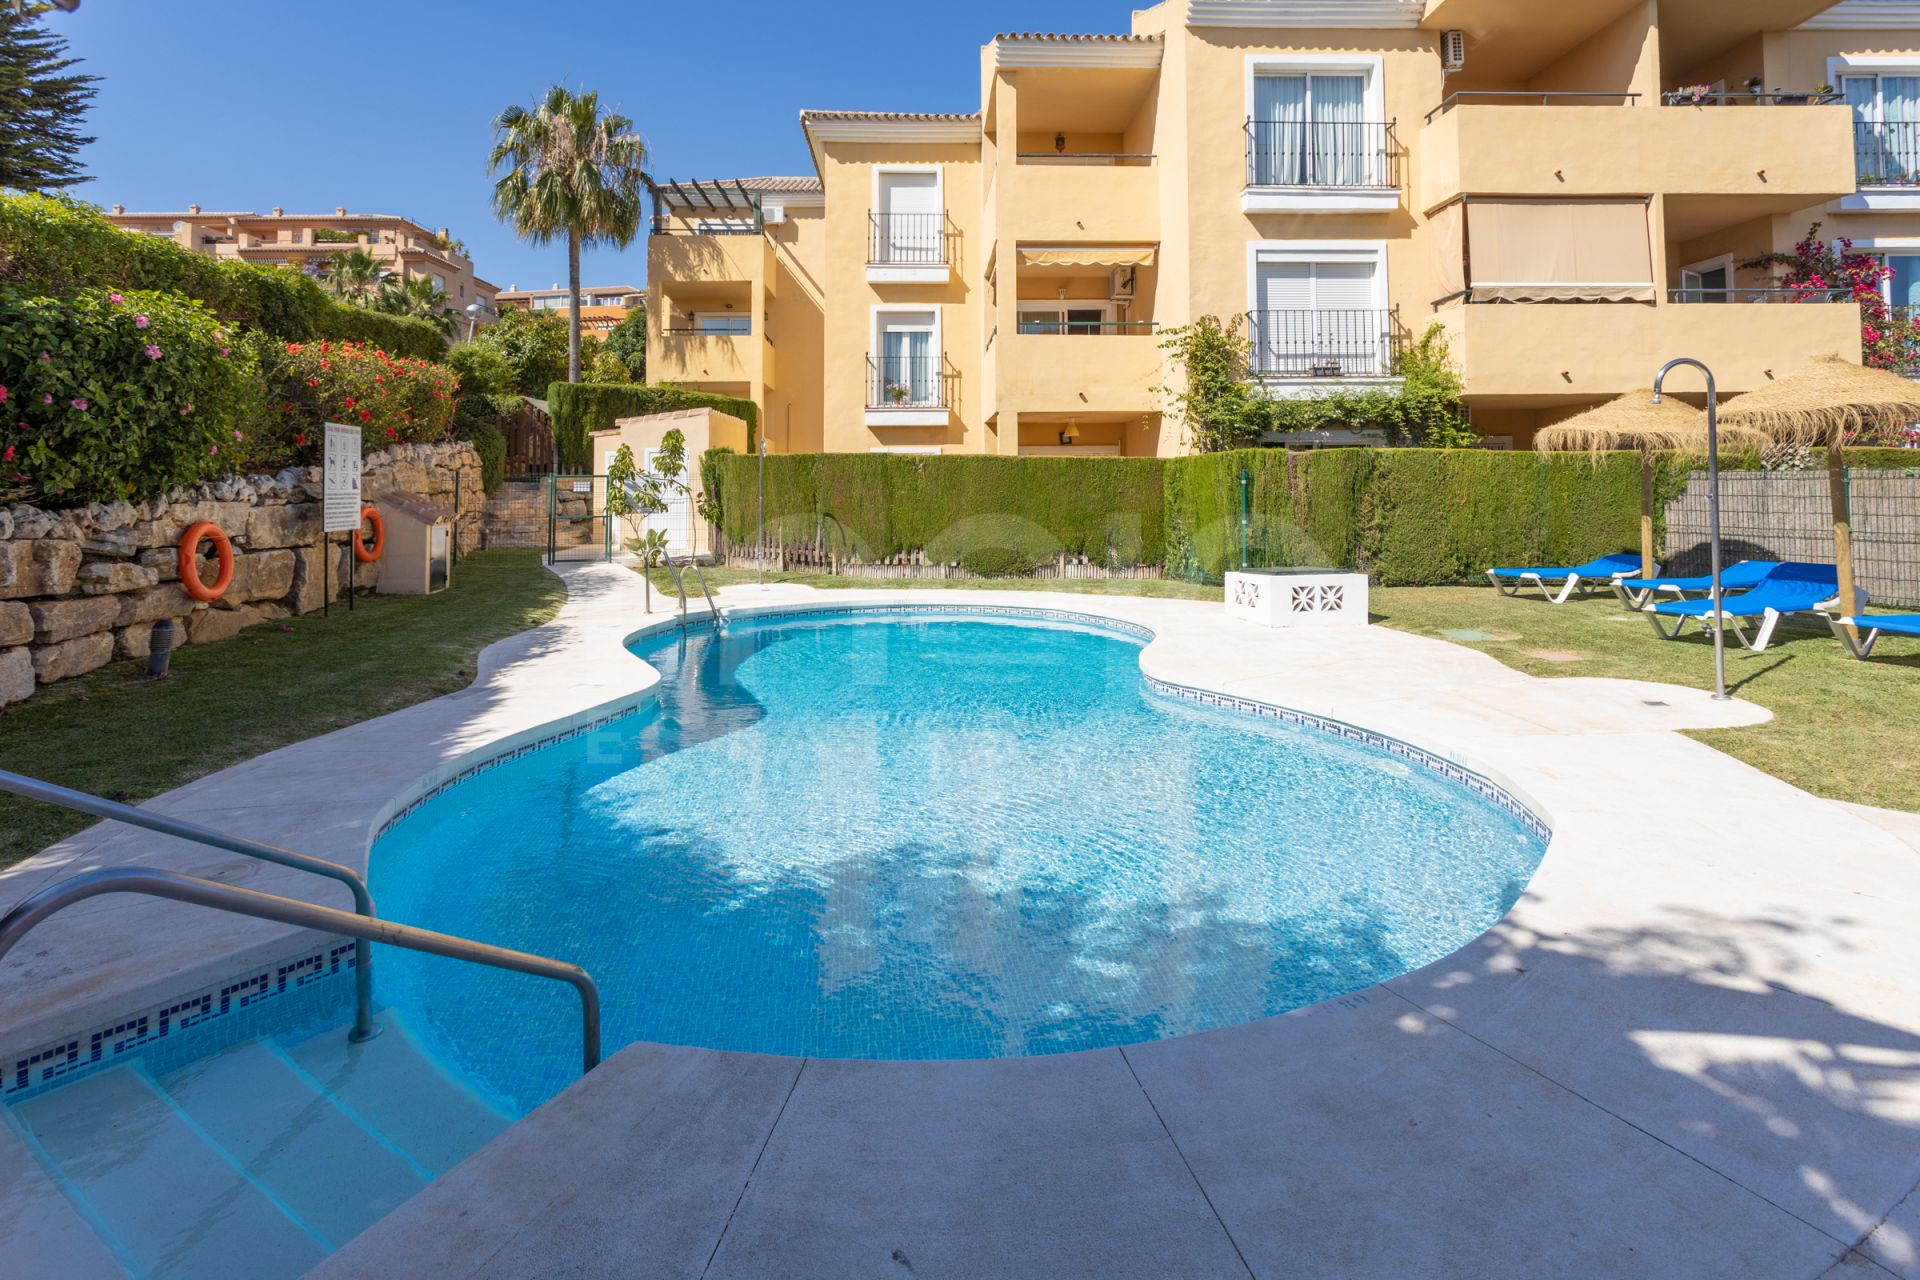 Beautiful and very well maintained apartment located in Riviera del Sol, Mijas Costa.